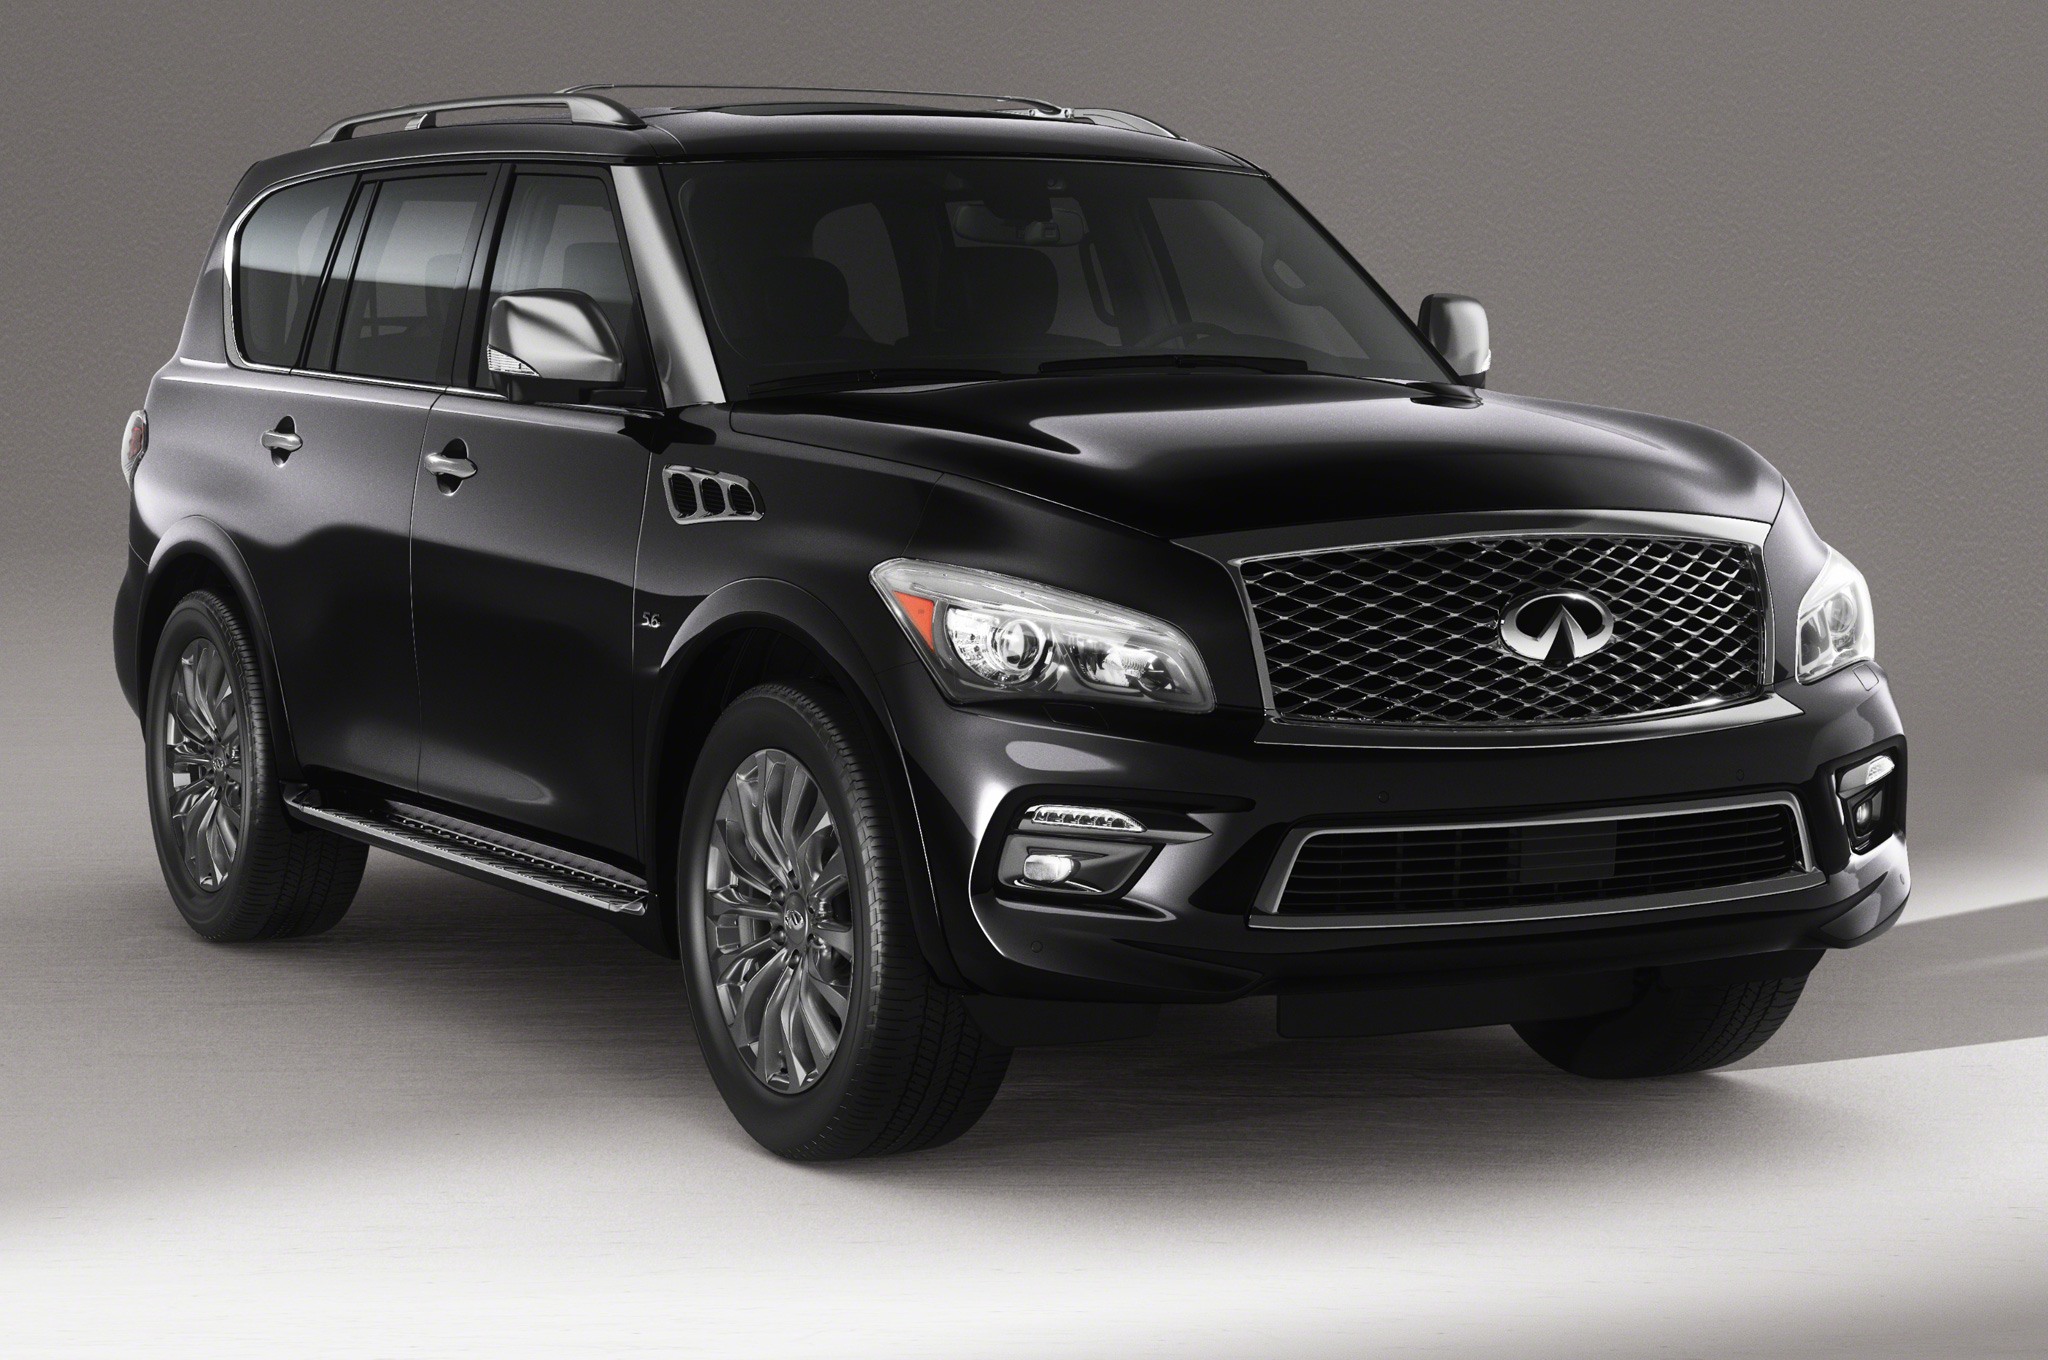 2015 infiniti qx80 information and photos zombiedrive 2015 infiniti qx80 3 2015 infiniti qx80 3 vanachro Image collections